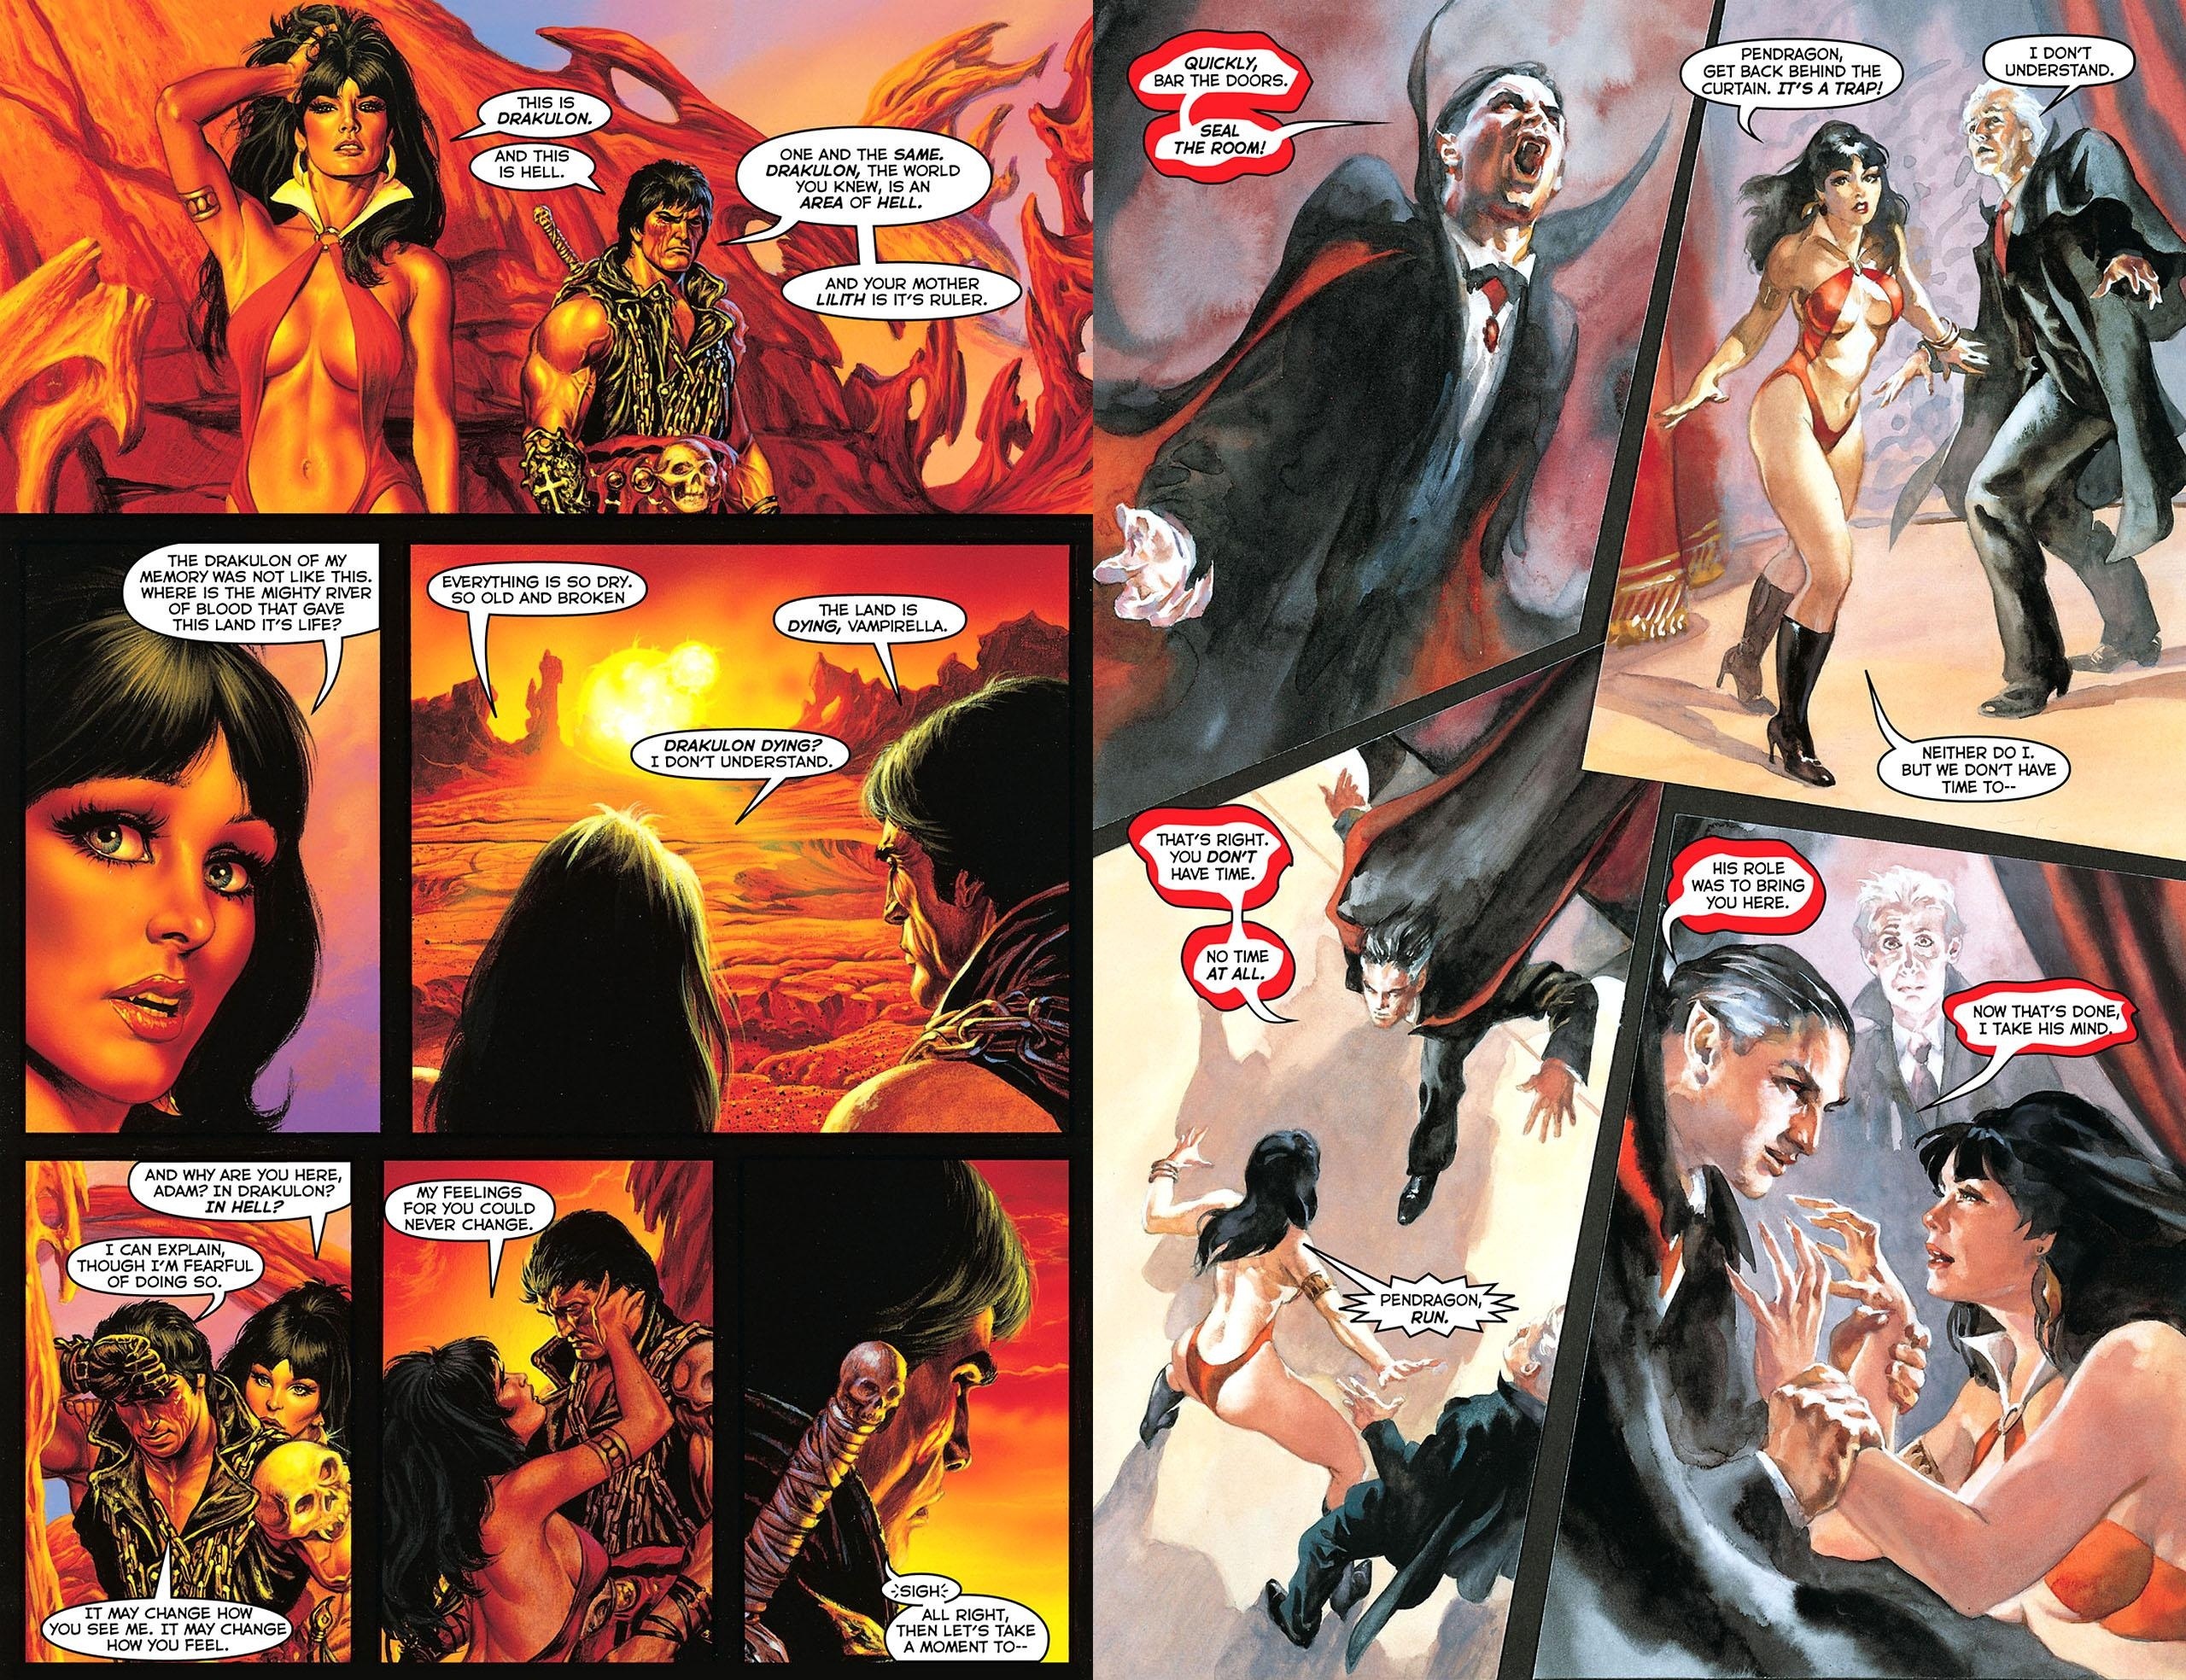 Vampirella Masters Vol 6 James Robinson review